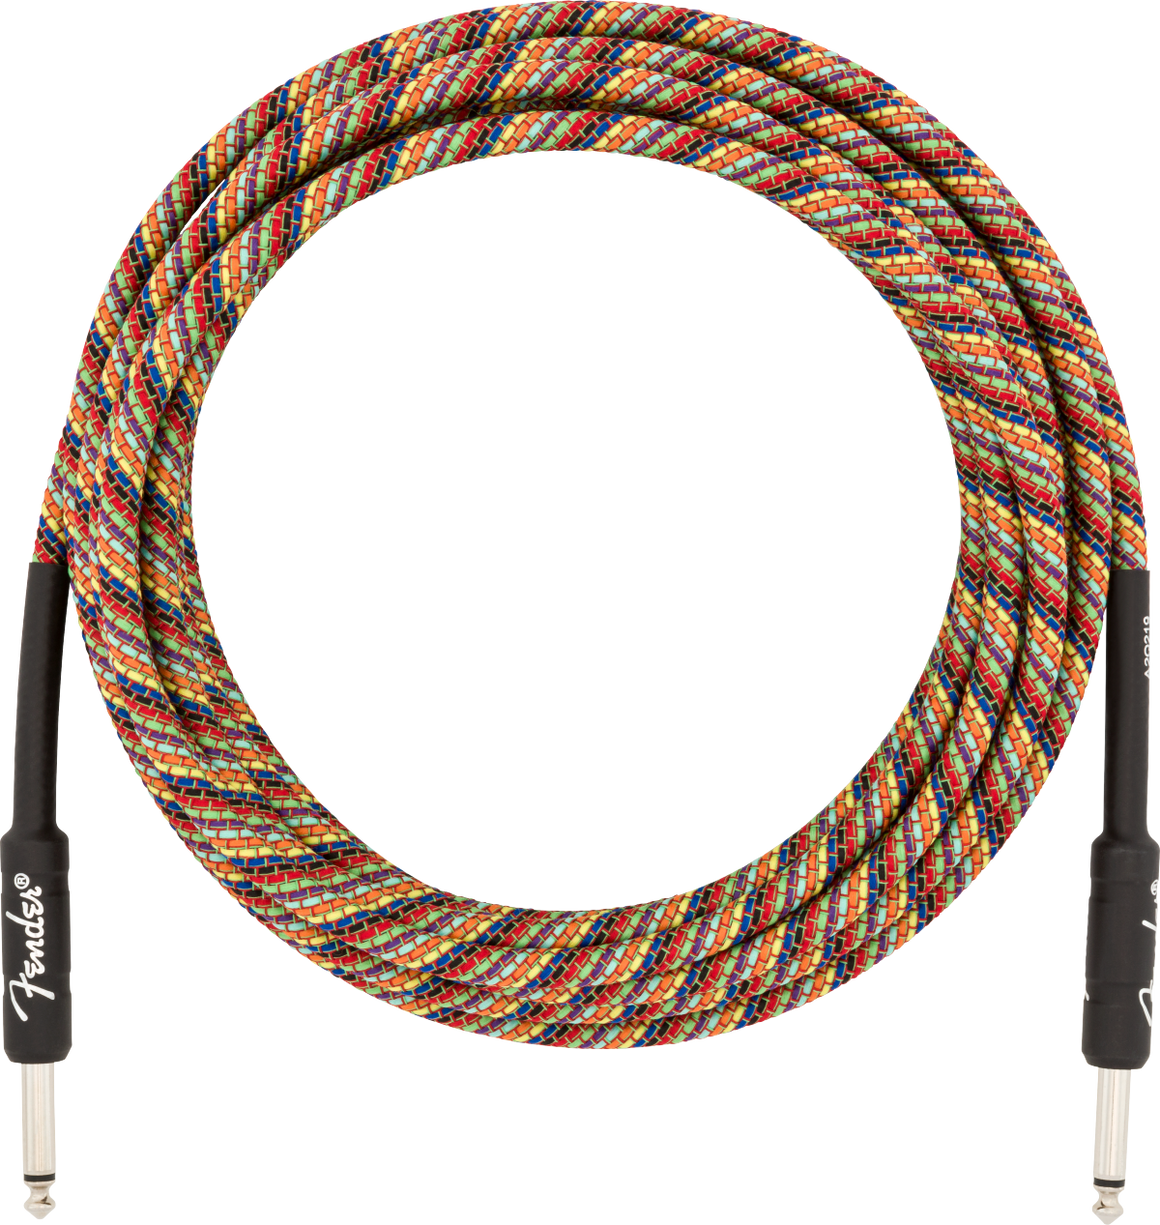 Fender 18.6' INST CABLE, RAINBOW